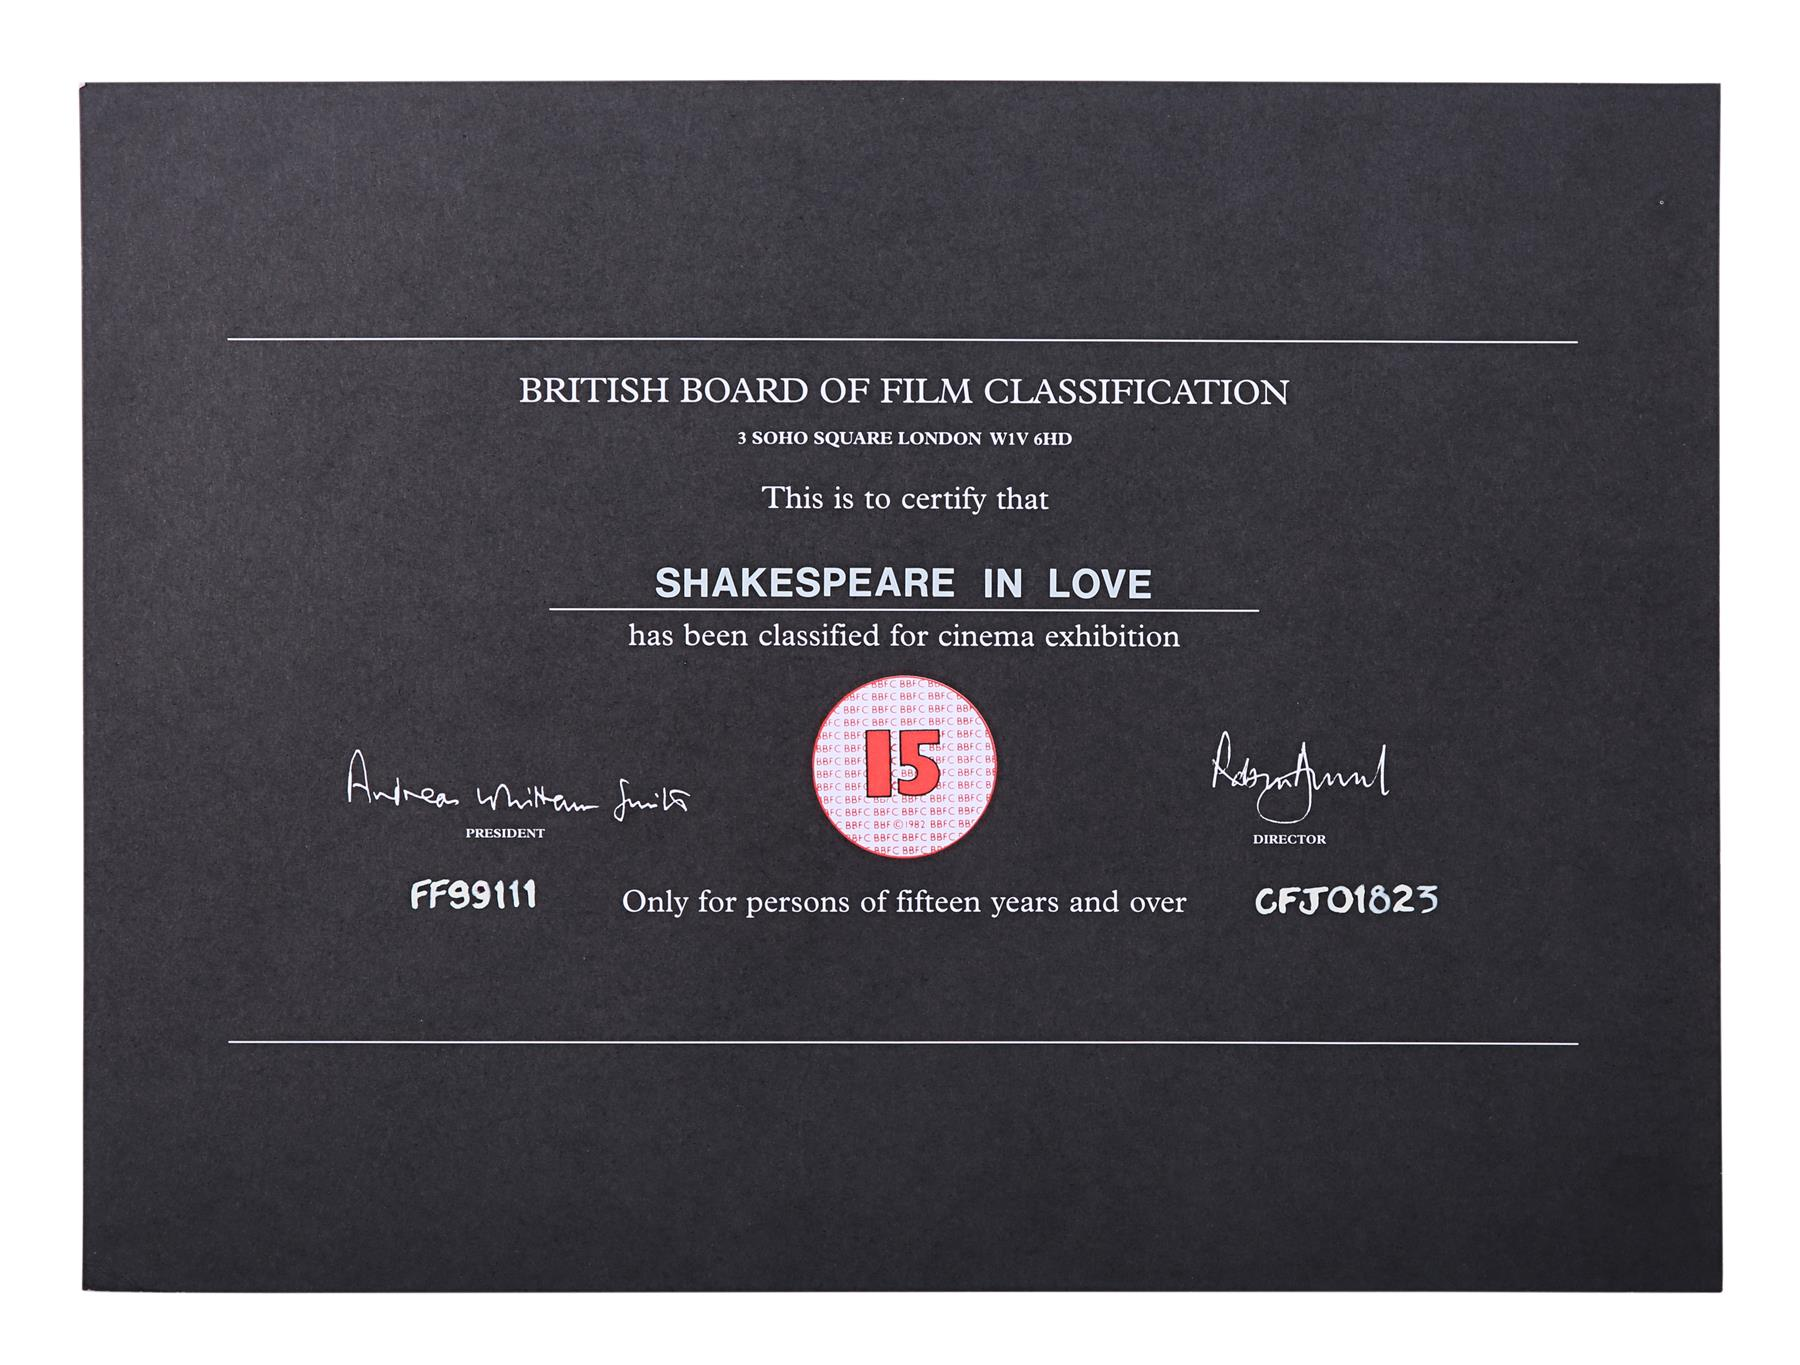 VARIOUS PRODUCTIONS - BBFC Certificates Romance Films - Image 6 of 7